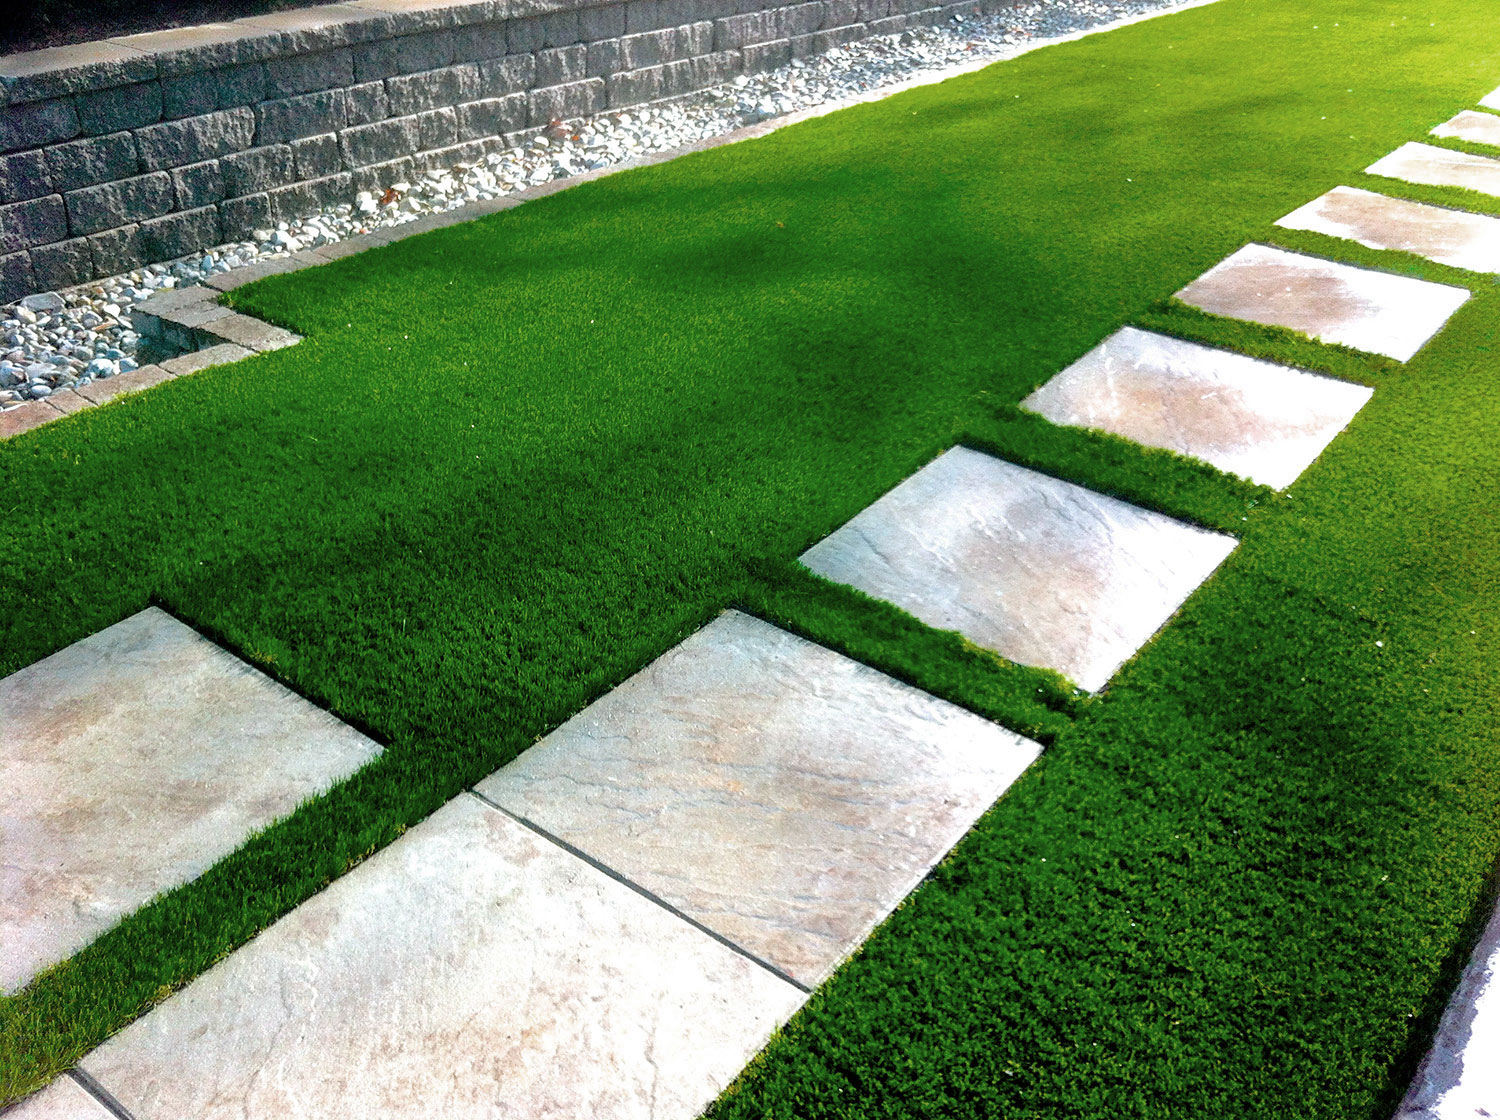 Rymar Landscape Turf @ Merkley Supply LTD - Stone supplier in Ottawa, Ontario